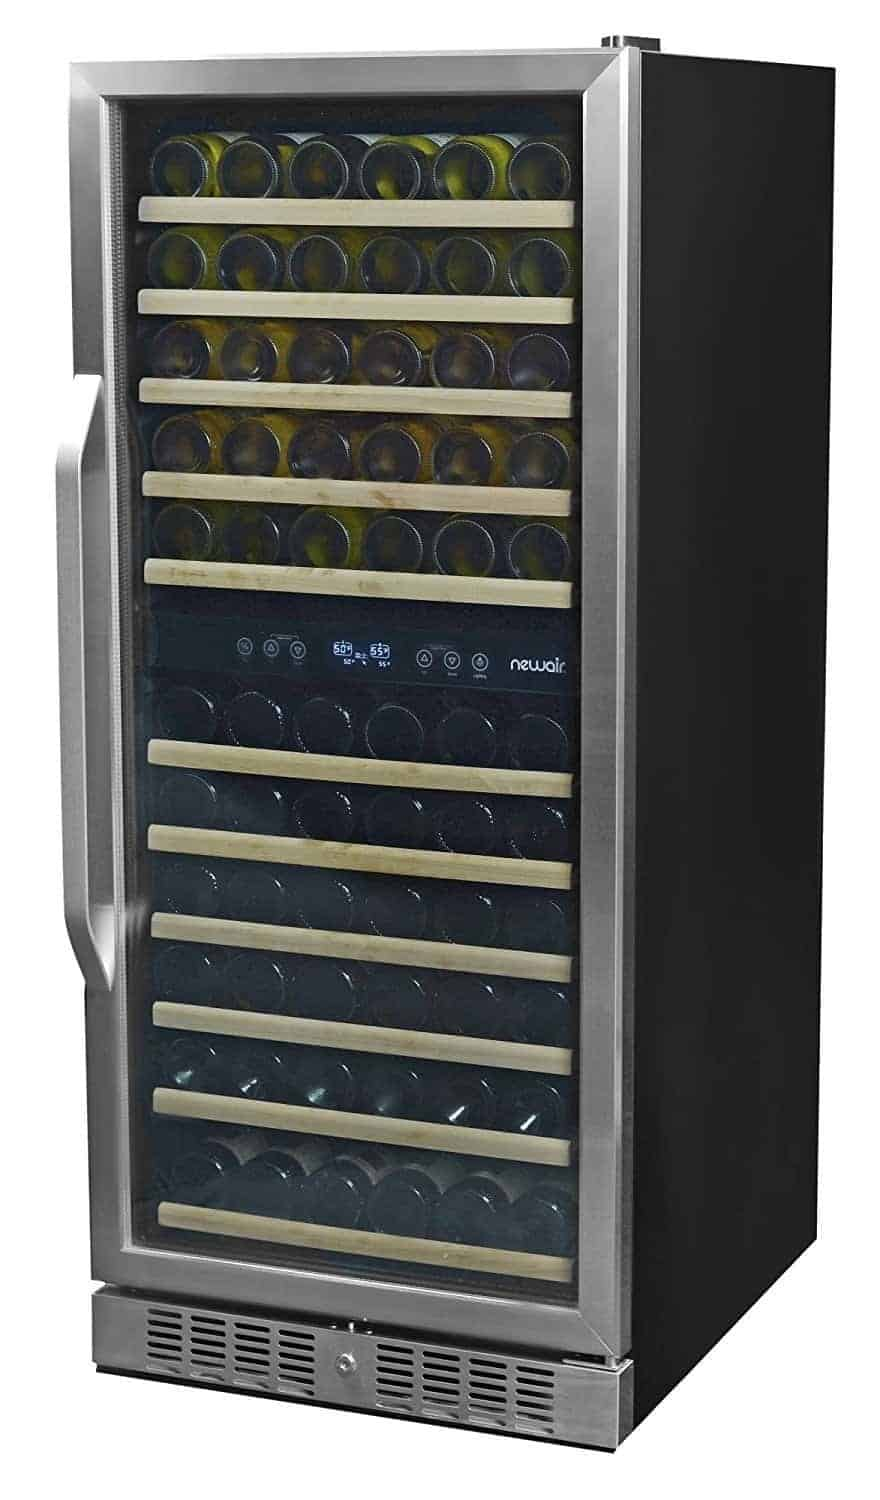 NewAir AWR-1160DB Premier Gold Series 116 Bottle Built-In Wine Cooler, Stainless Steel